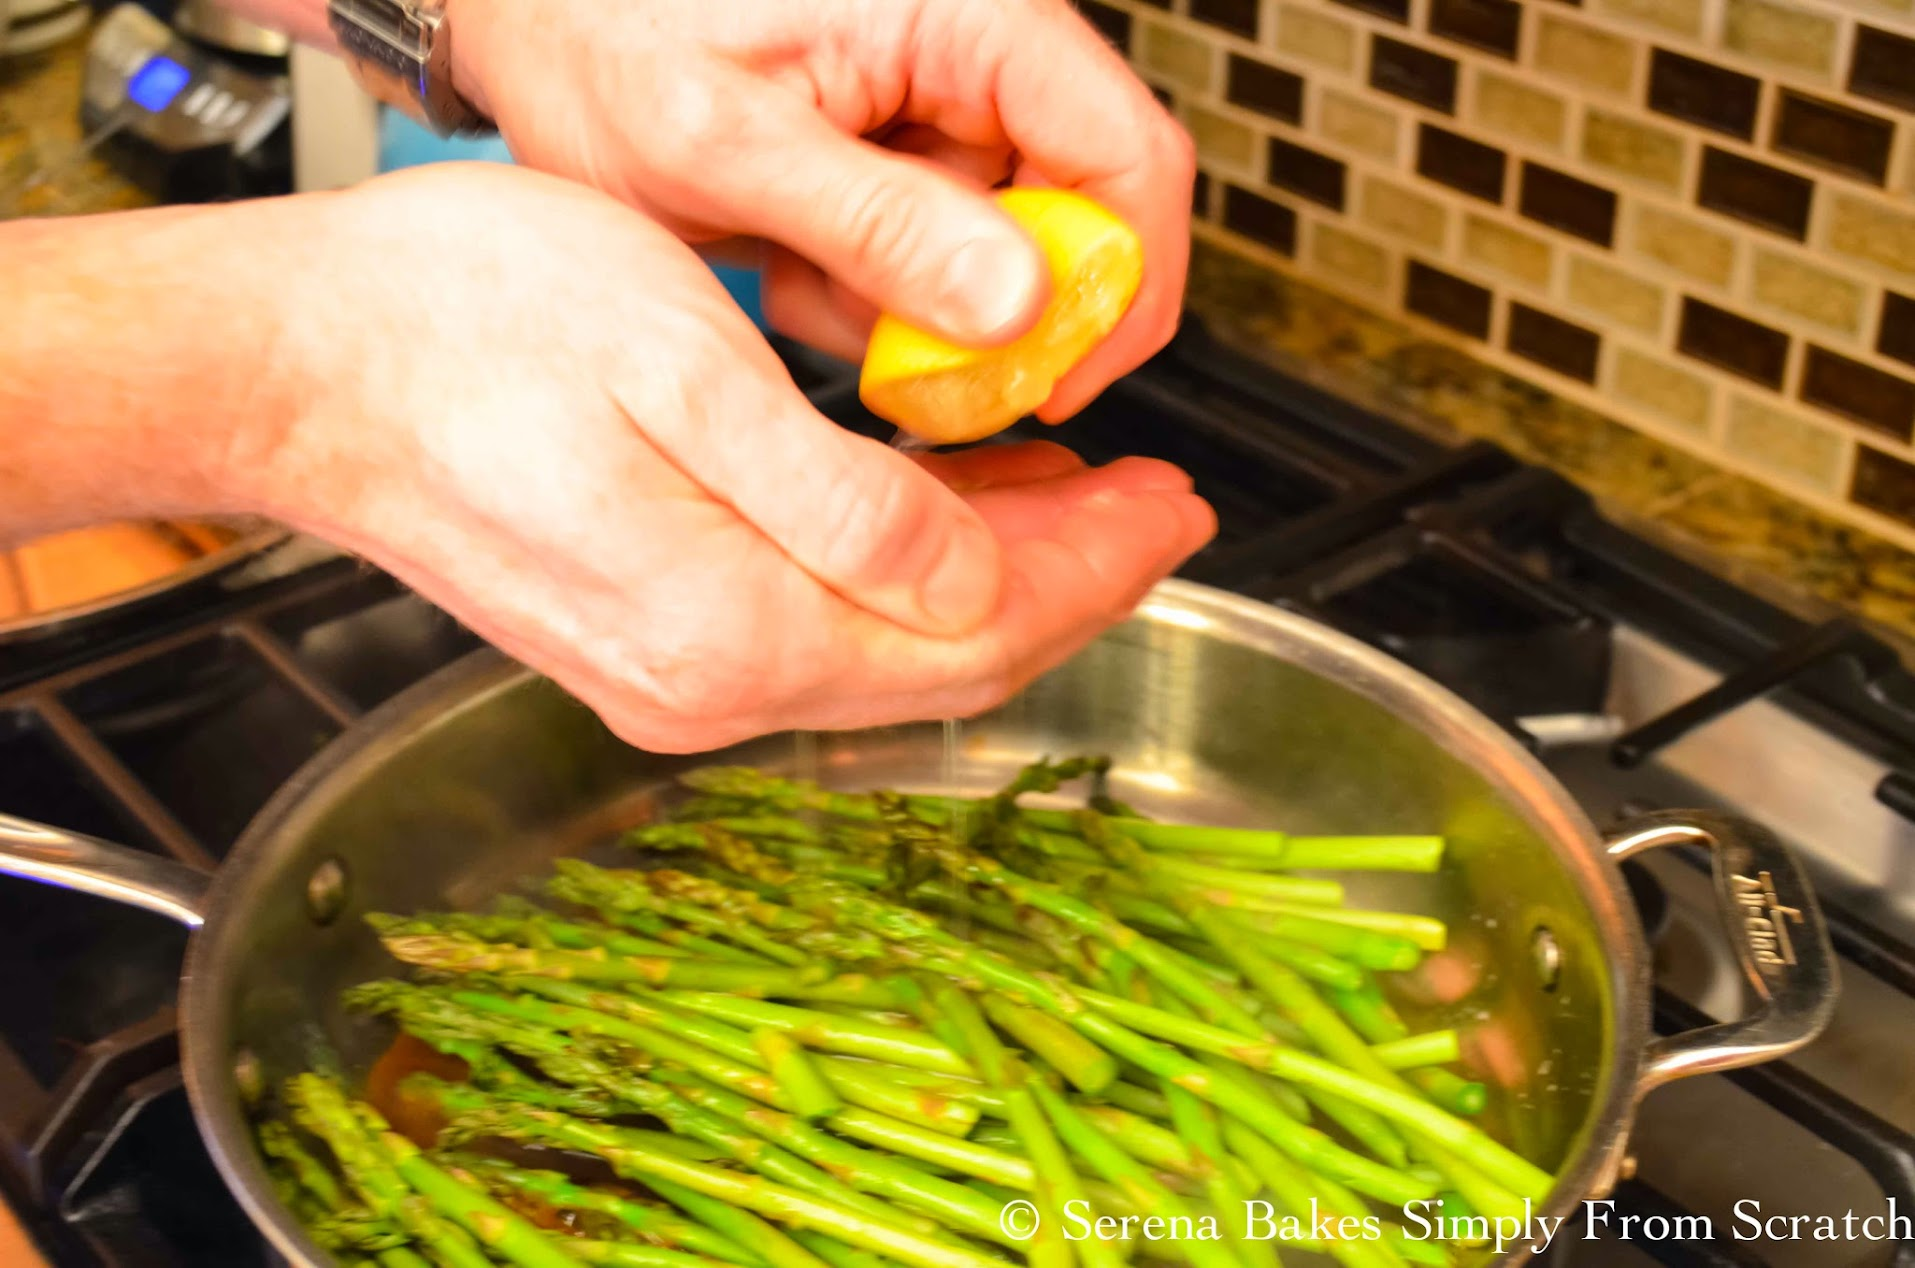 Pan-Roasted-Asparagus-Lemon-Juice-Salt-Pepper.jpg